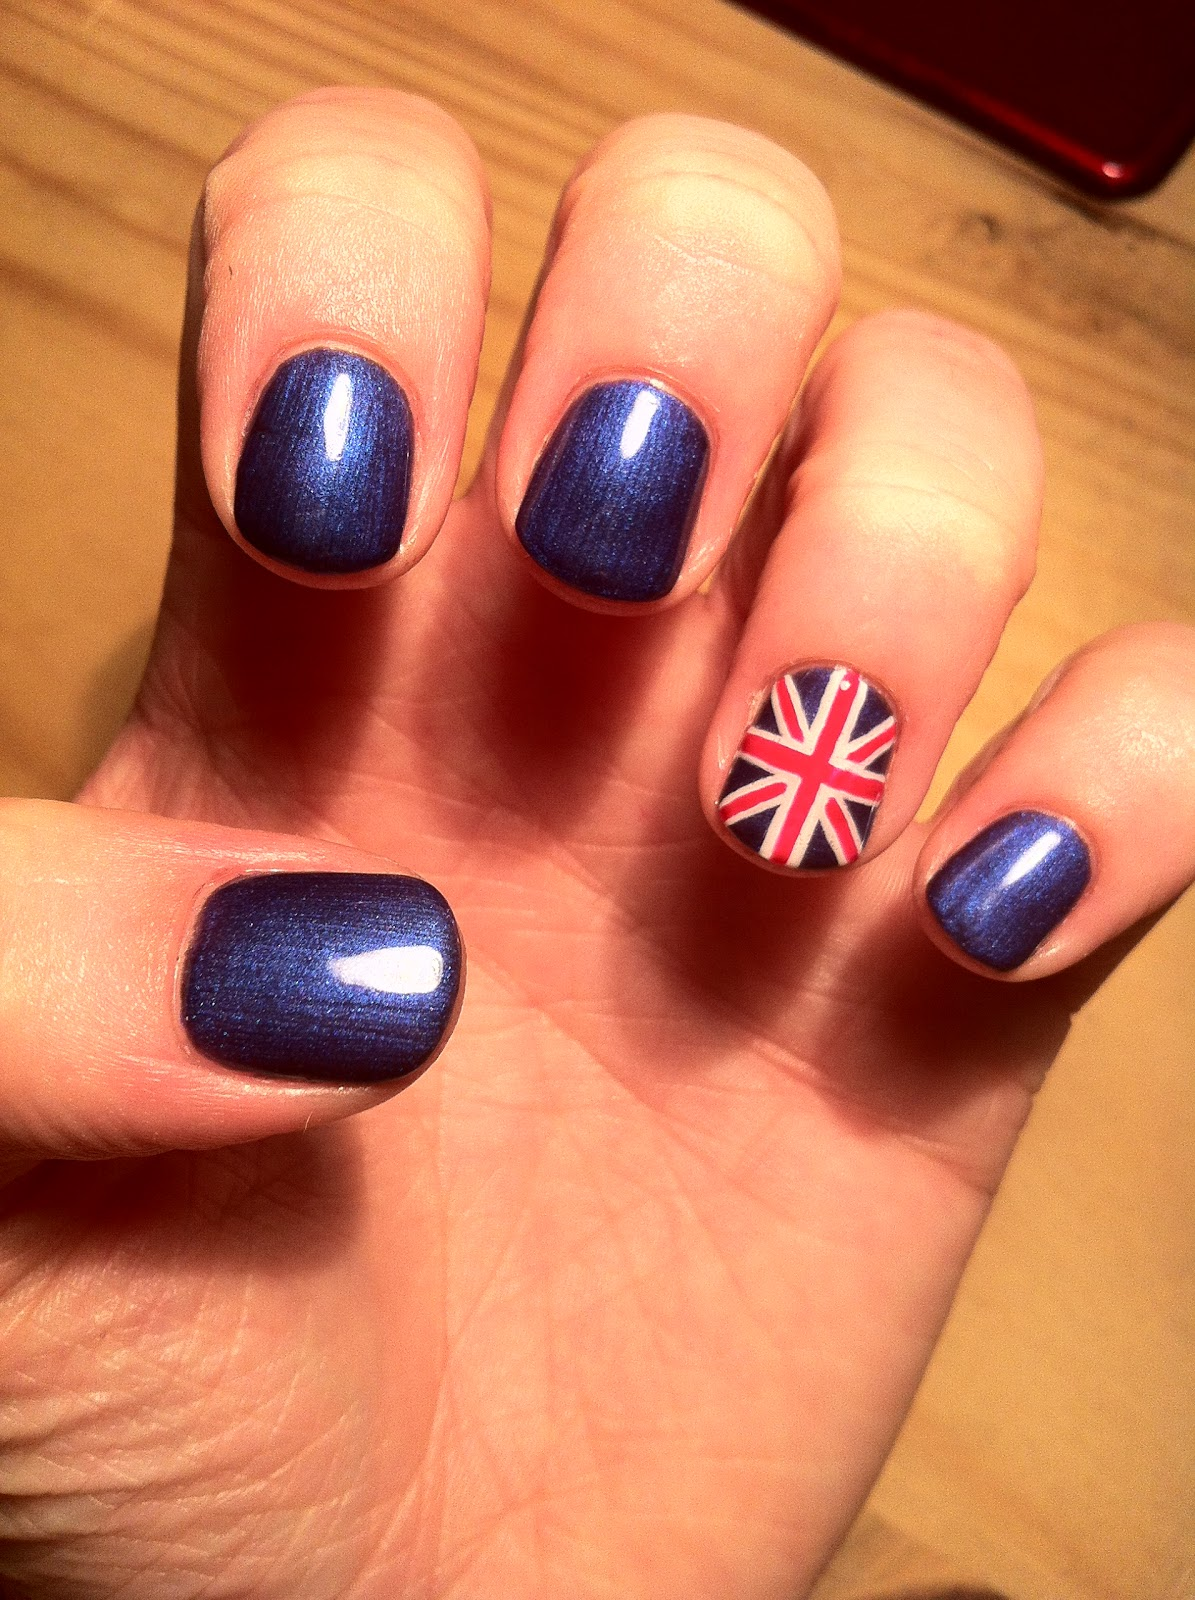 Brush Up And Polish Up!: CND Shellac Nail Art